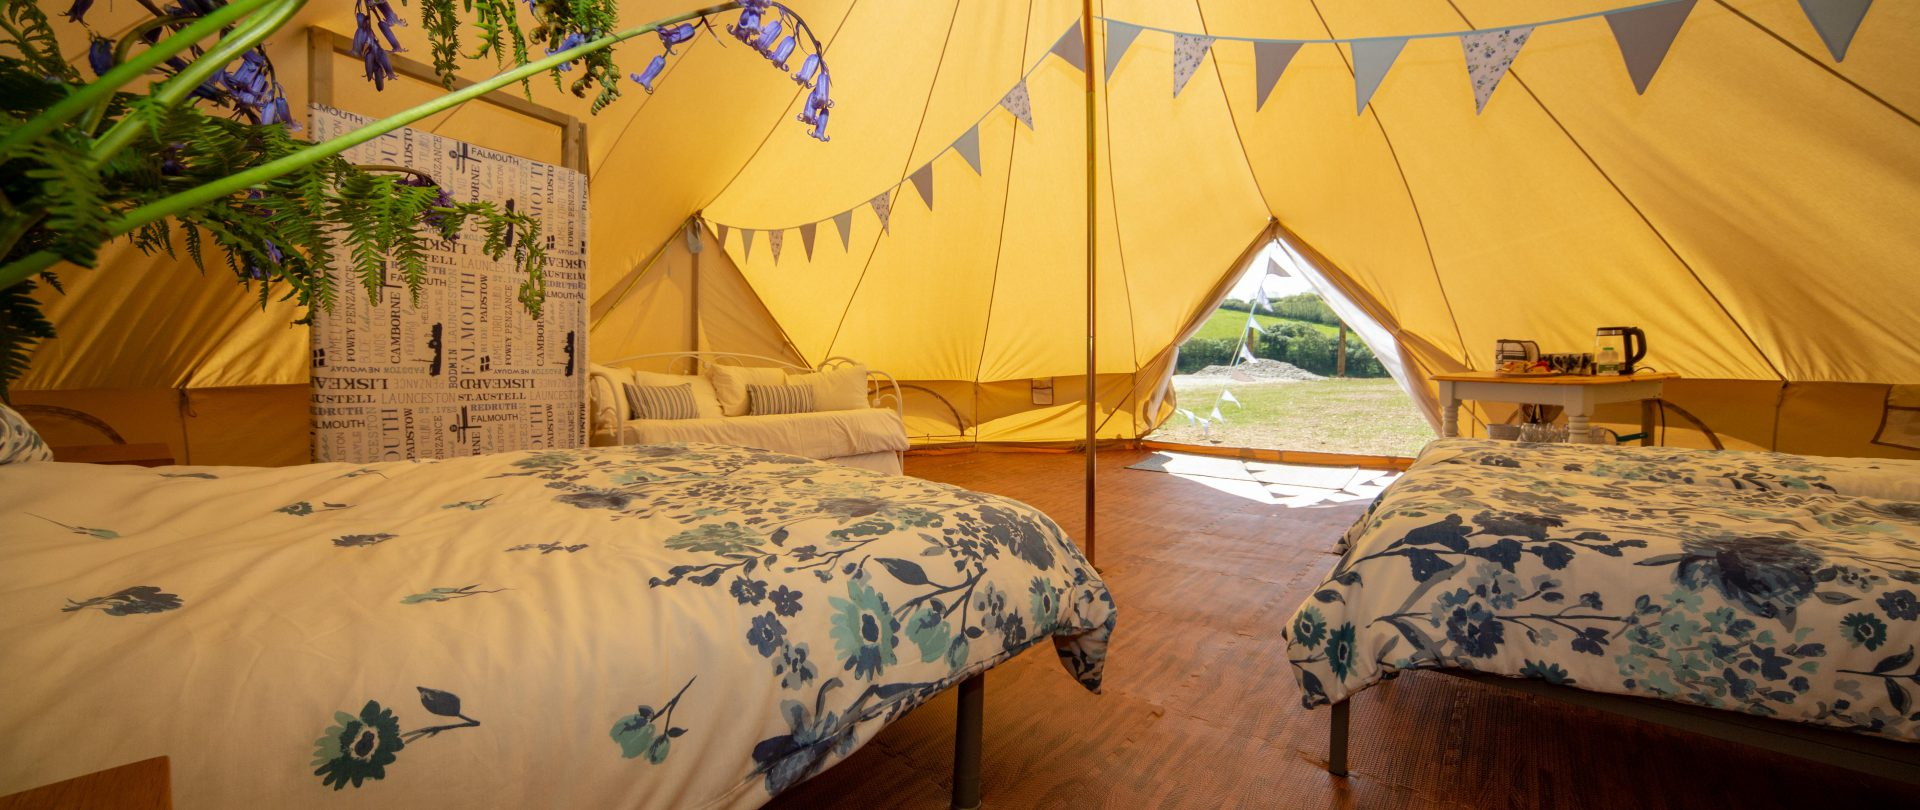 The Oaks Holiday Park: Glamping Interior